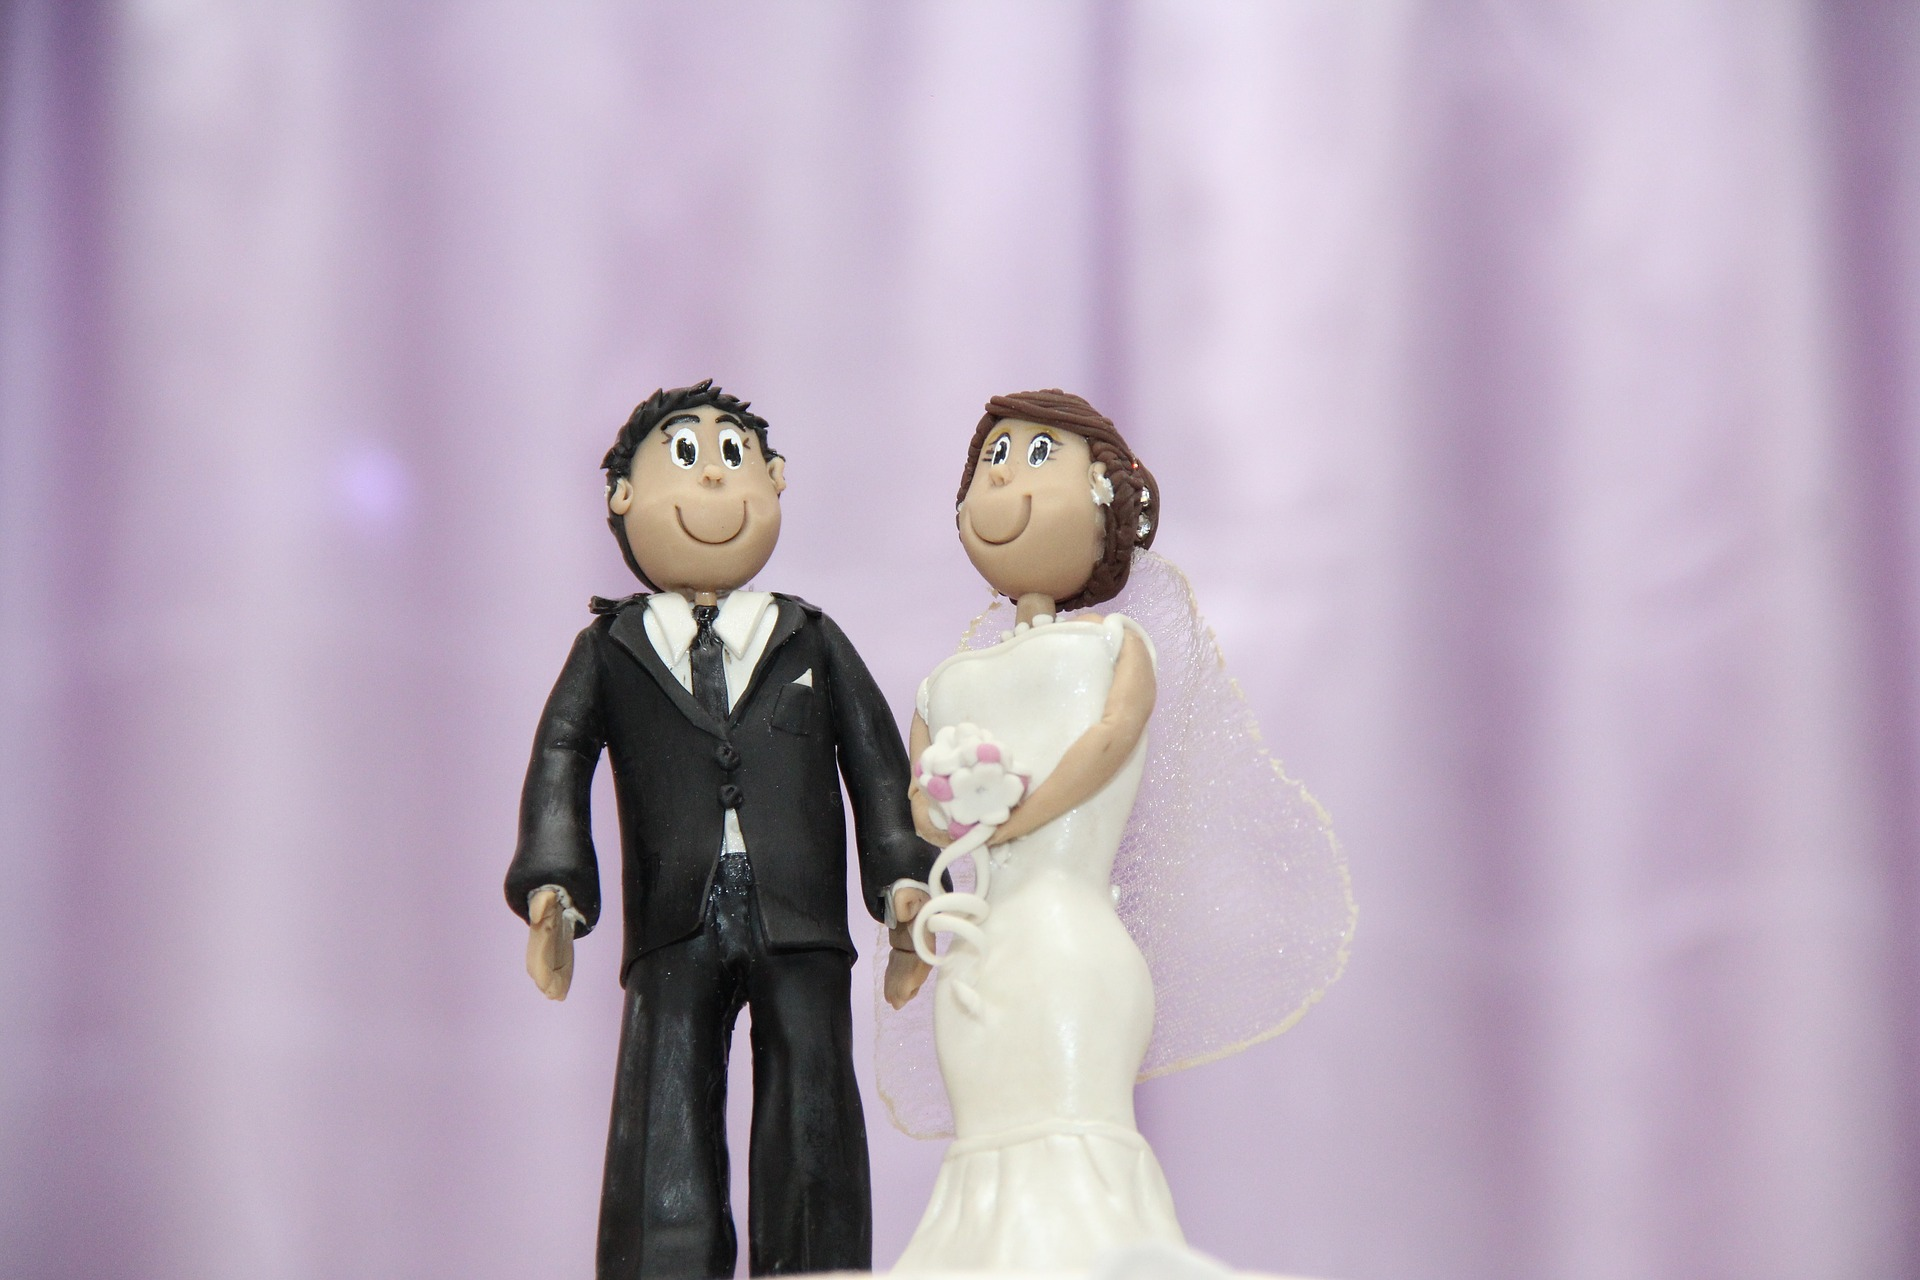 wedding cake topper with a bride and groom